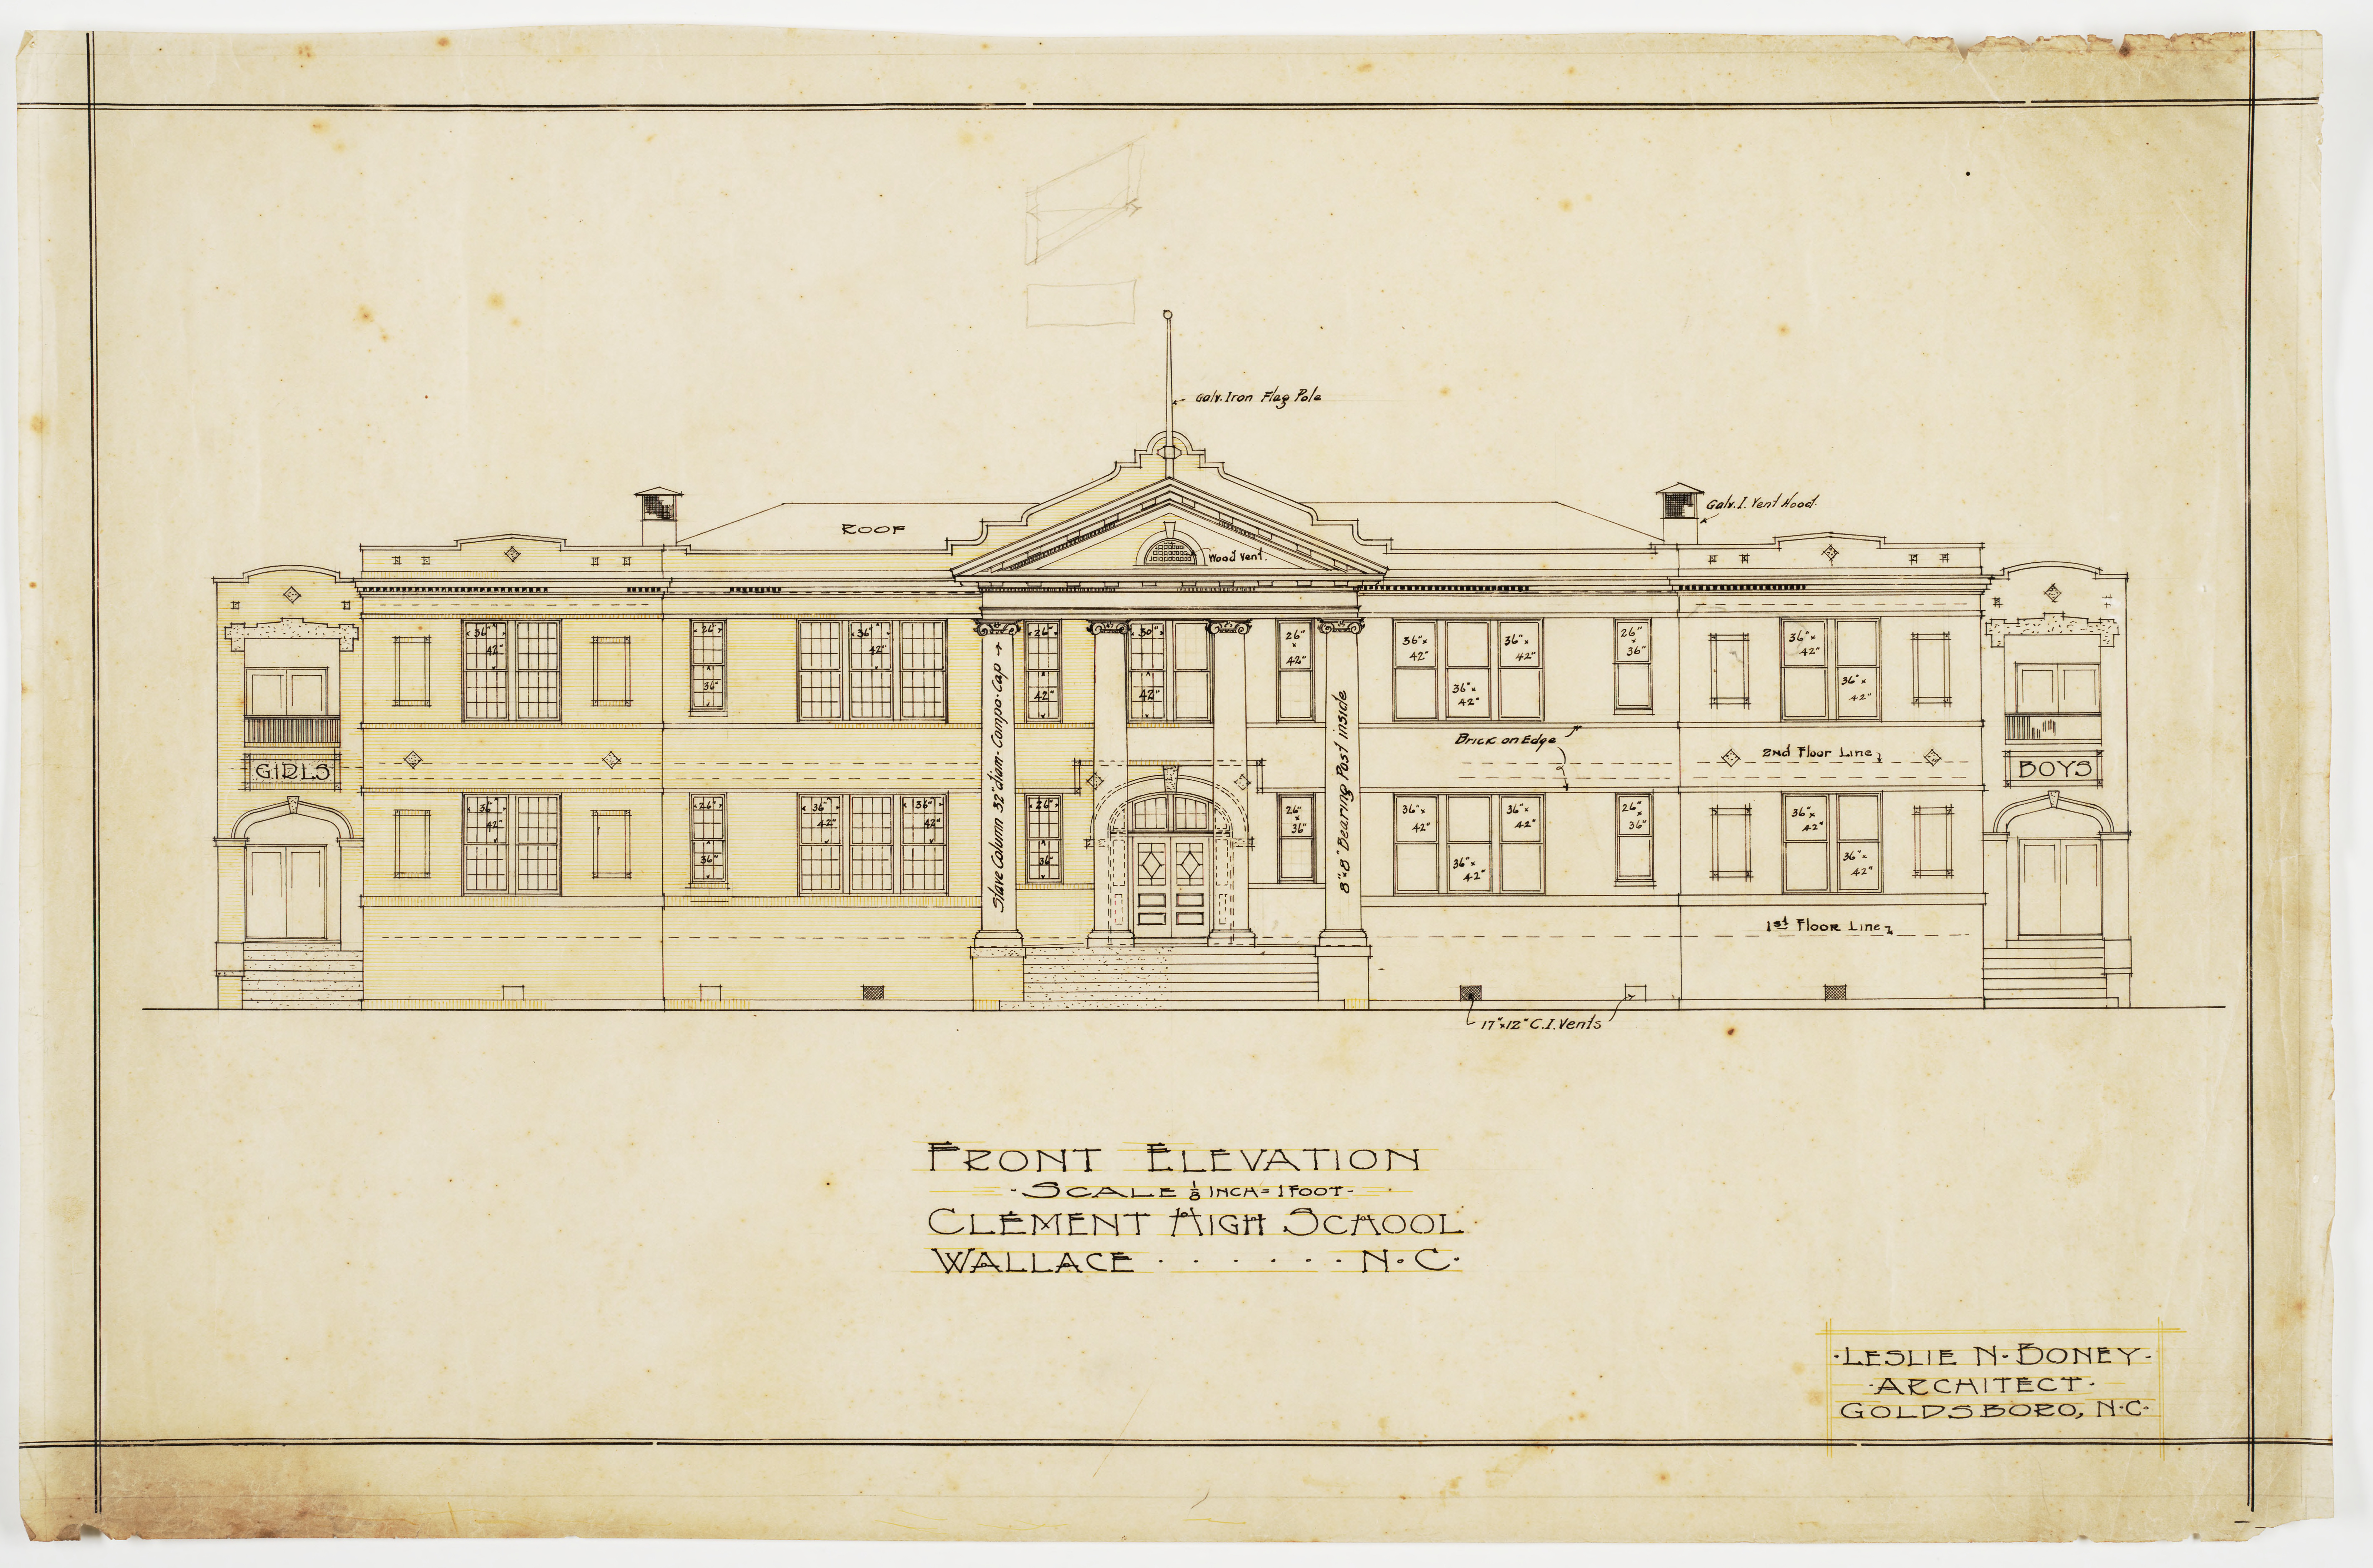 Front Elevation School Building : Front elevation clement school wallace n c mc